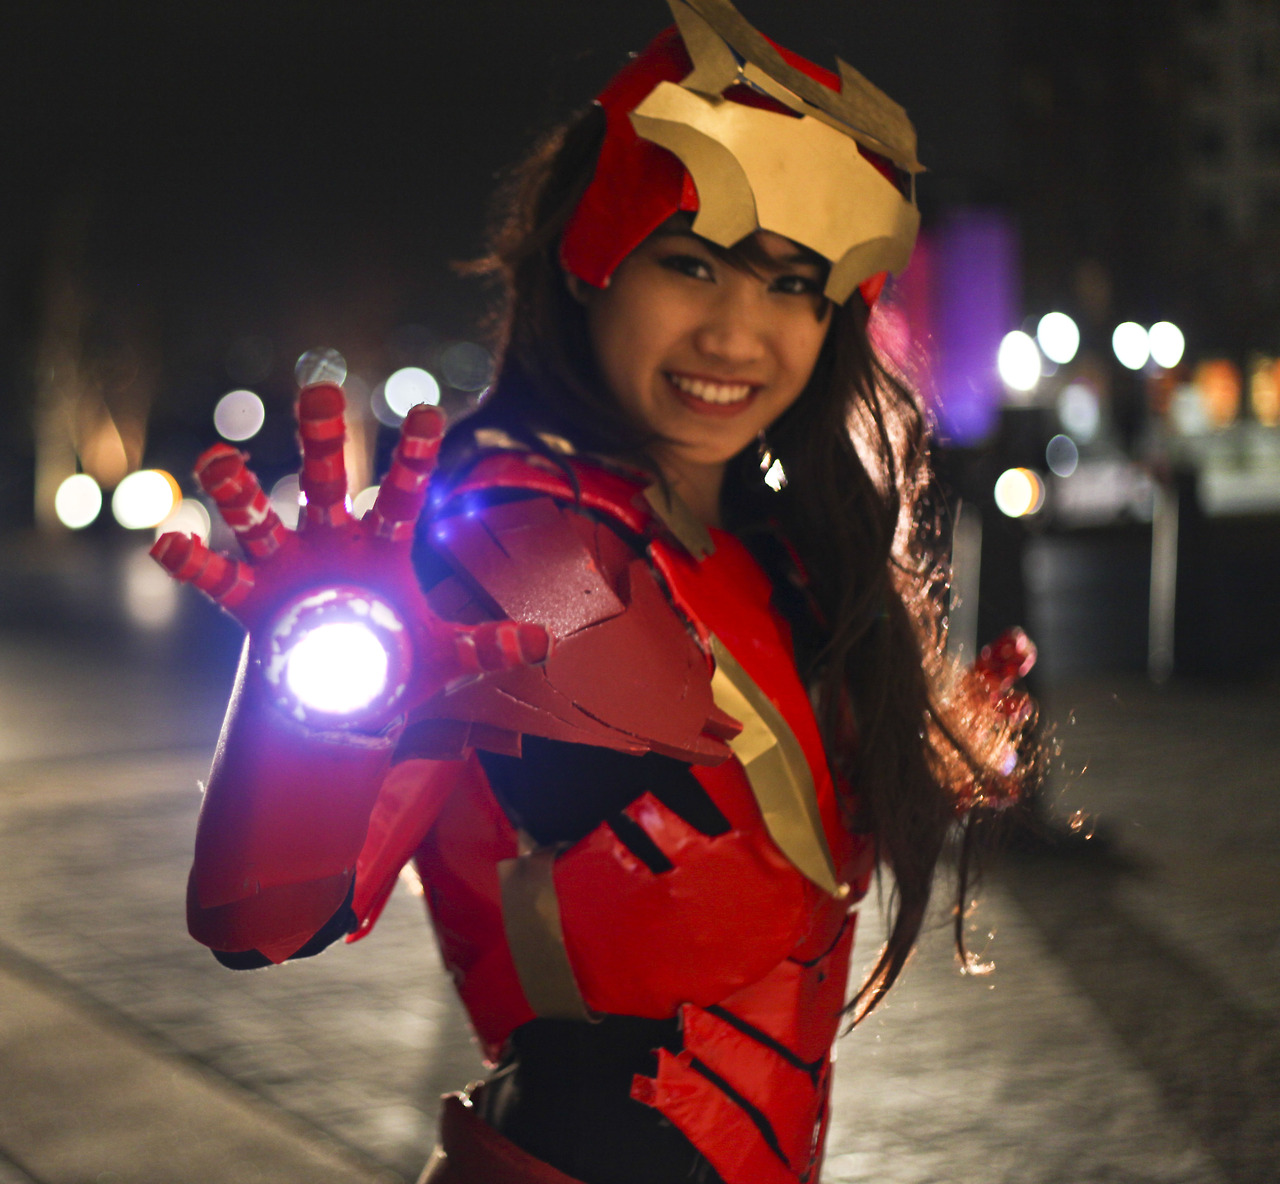 Farbots: Asian Girl Iron Man Cosplay, whoa!